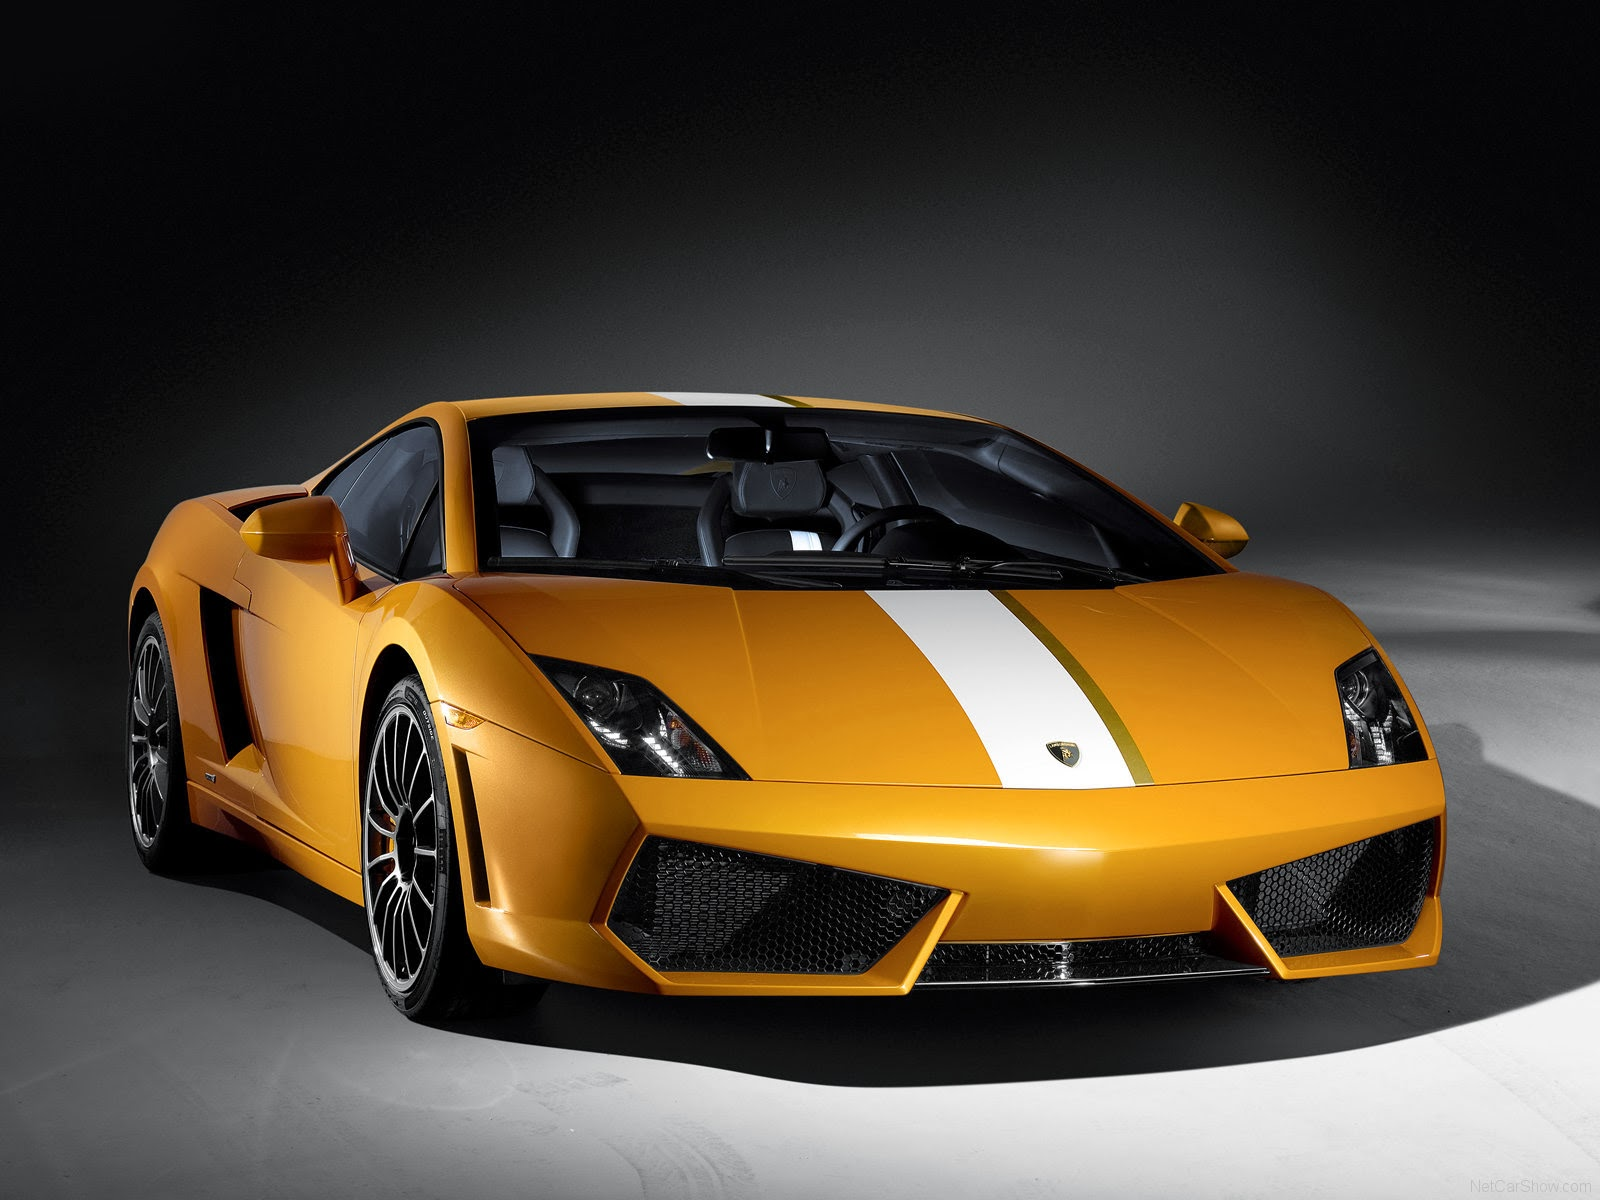 http://www.crazywallpapers.in/2014/03/2010-lamborghini-gallardo-lp550-2-hd.html